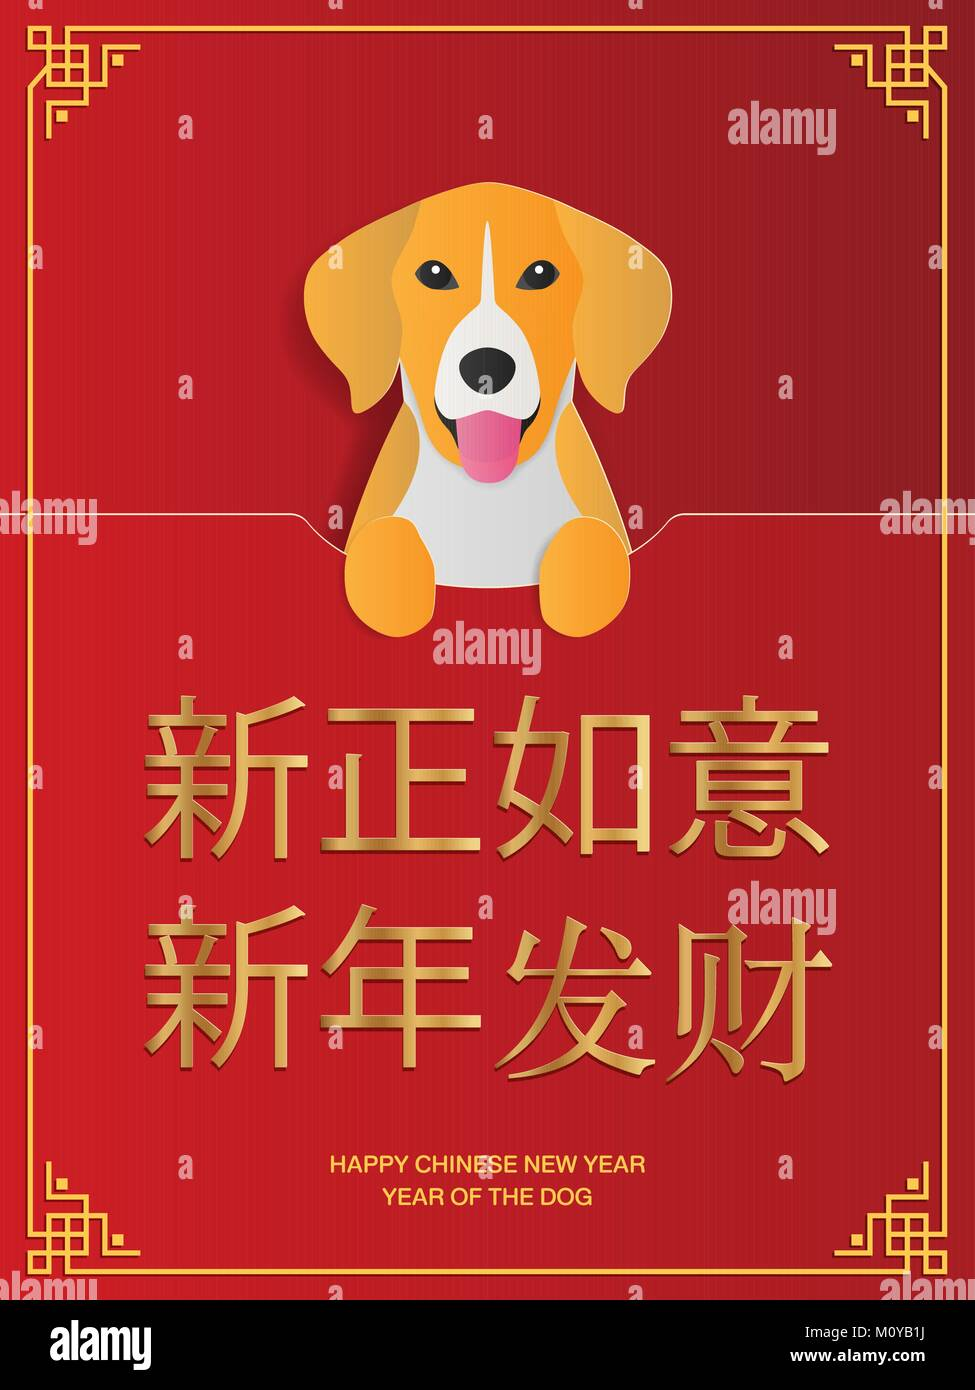 Chinese New Year Greeting Card With Dog Decorations And